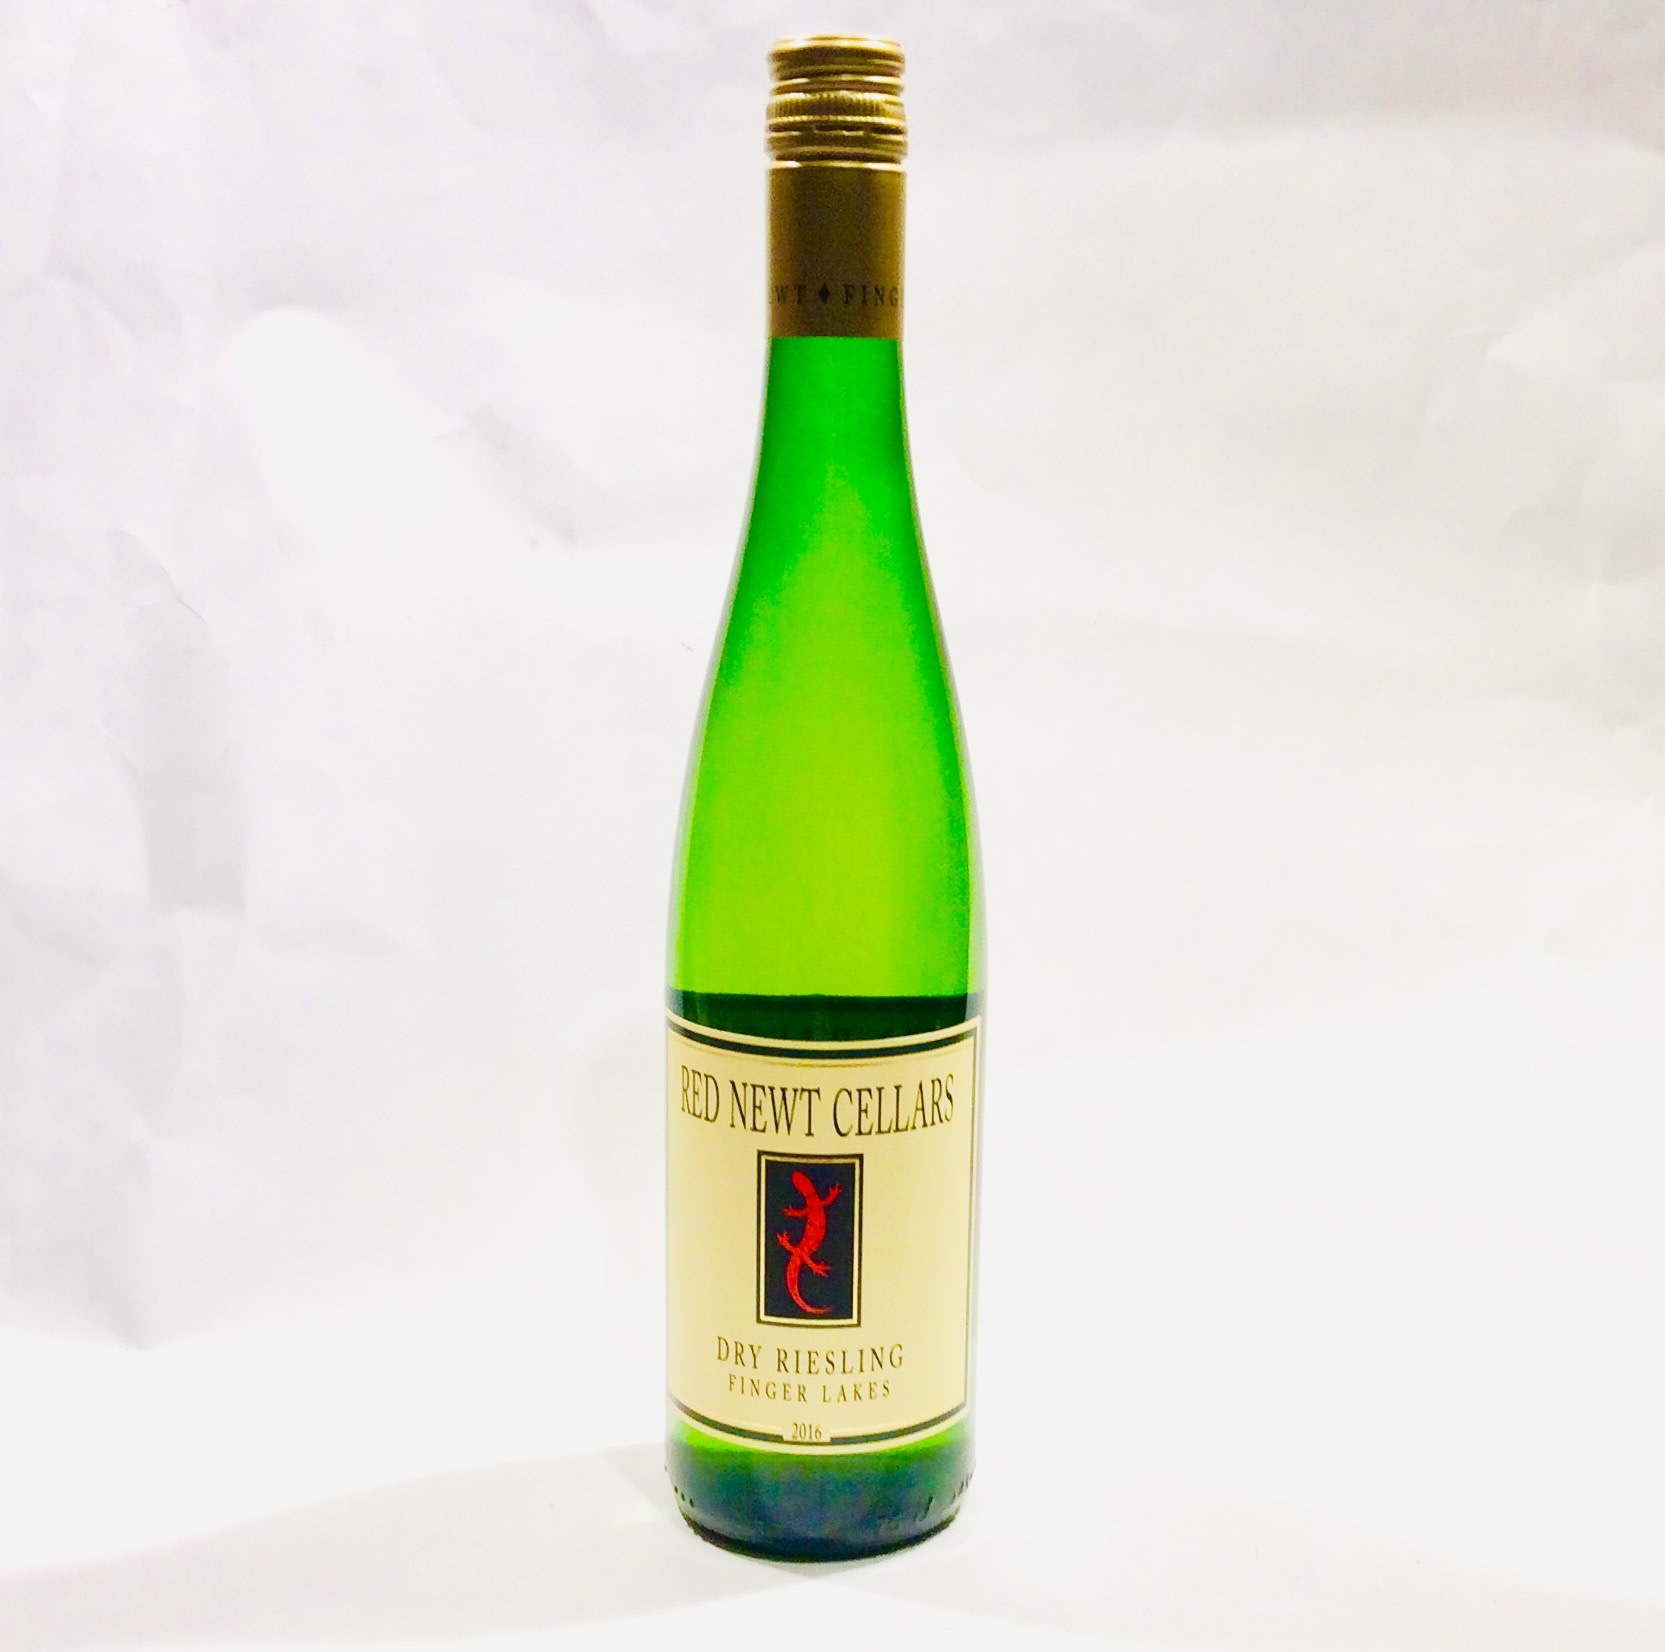 Red Newt Dry Riesling - Finger Lake 2016 (750 ml)